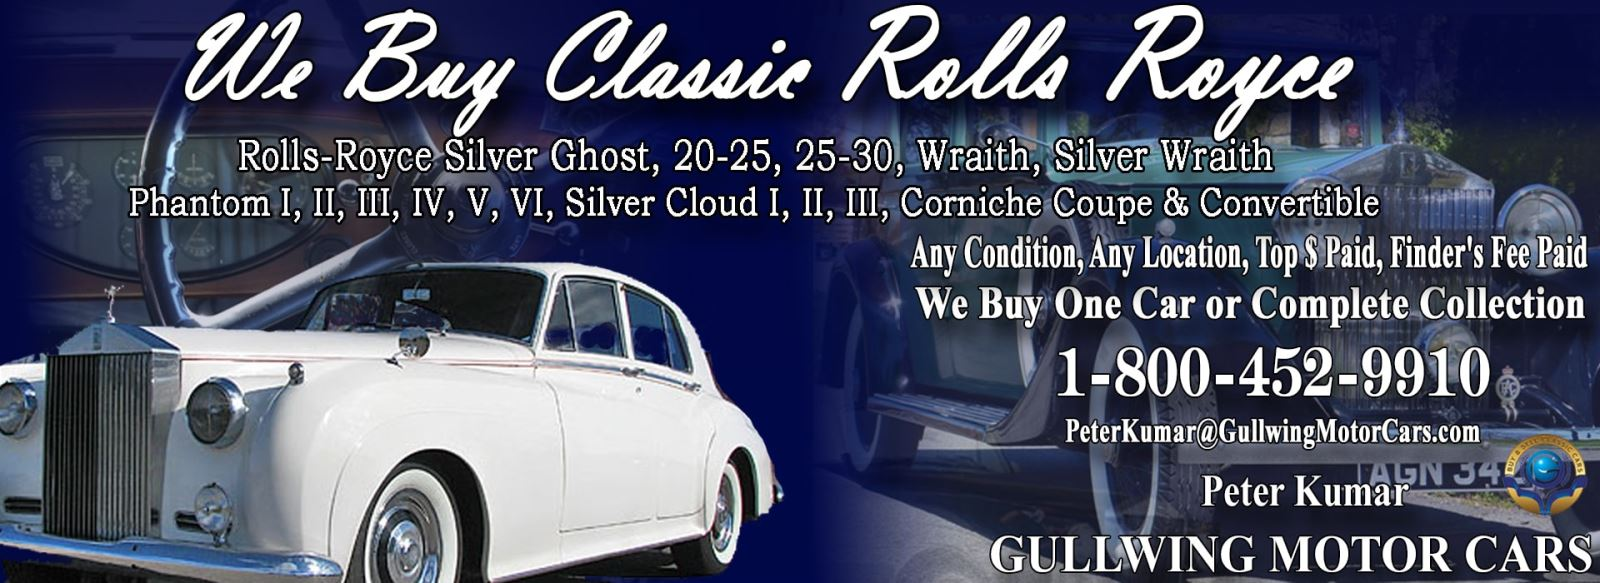 Classic Rolls Royce Silver Cloud I for sale, we buy vintage Rolls Royce Silver Cloud I. Call Peter Kumar. Gullwing Motor